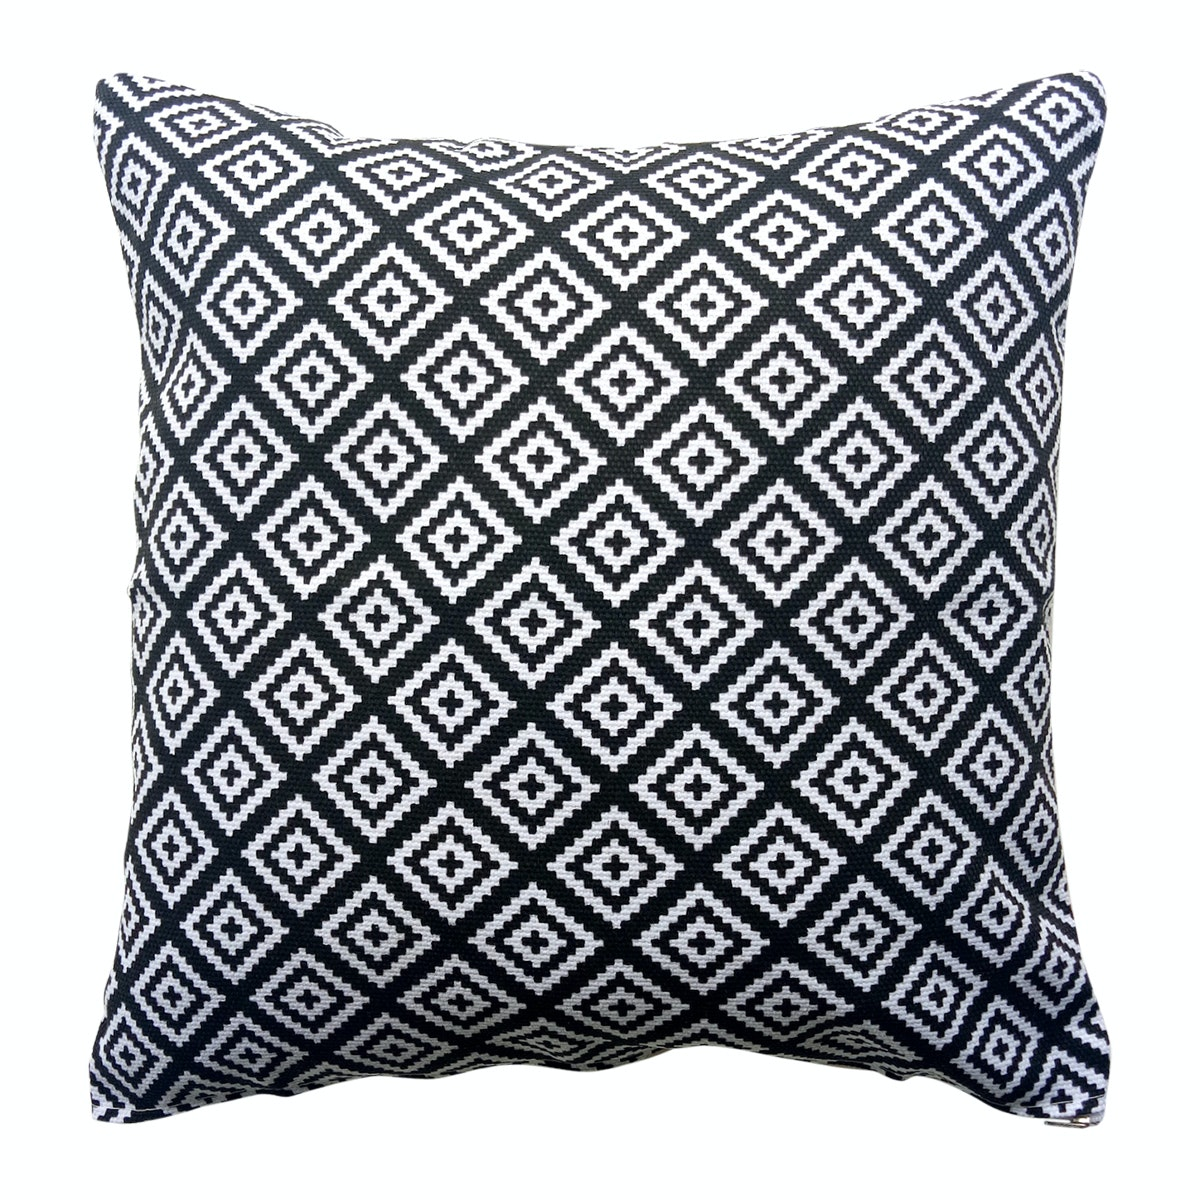 Stiletto In Style Cushion Cover / Sarung Bantal - Black Mexican